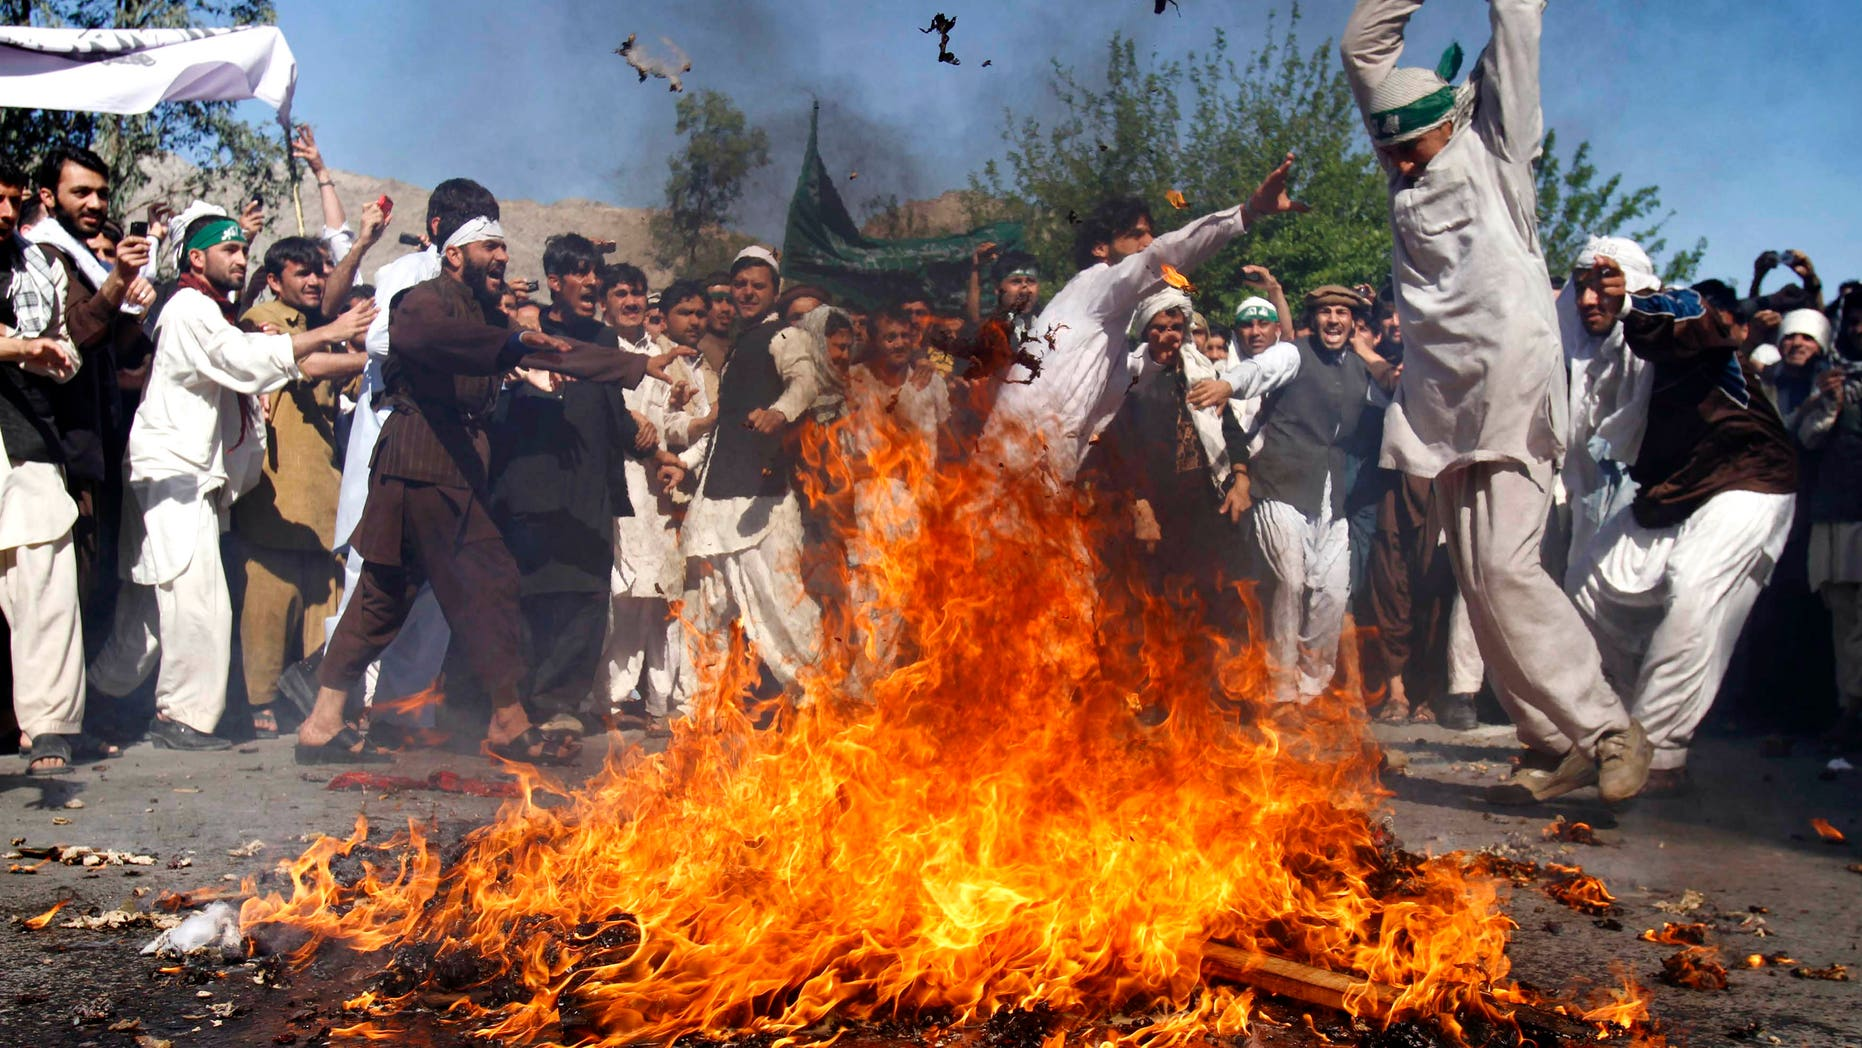 April 3: An Afghan protestor beats a burning effigy of U.S. President Barack Obama during a rally in Jalalabad, Afghanistan. Afghan protests against the burning of a Quran in Florida entered a third day with a demonstration in the major eastern city Sunday, while the Taliban called on people to rise up, blaming government forces for any violence. (AP)